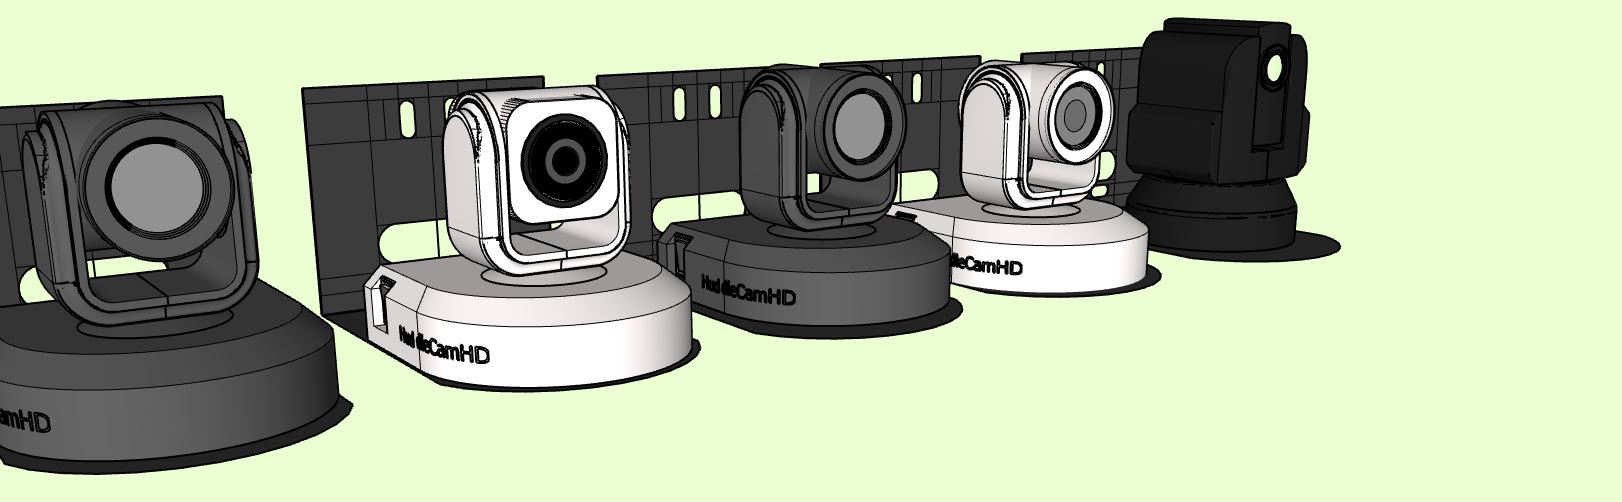 3D HuddleCAmHD Layouts.jpg